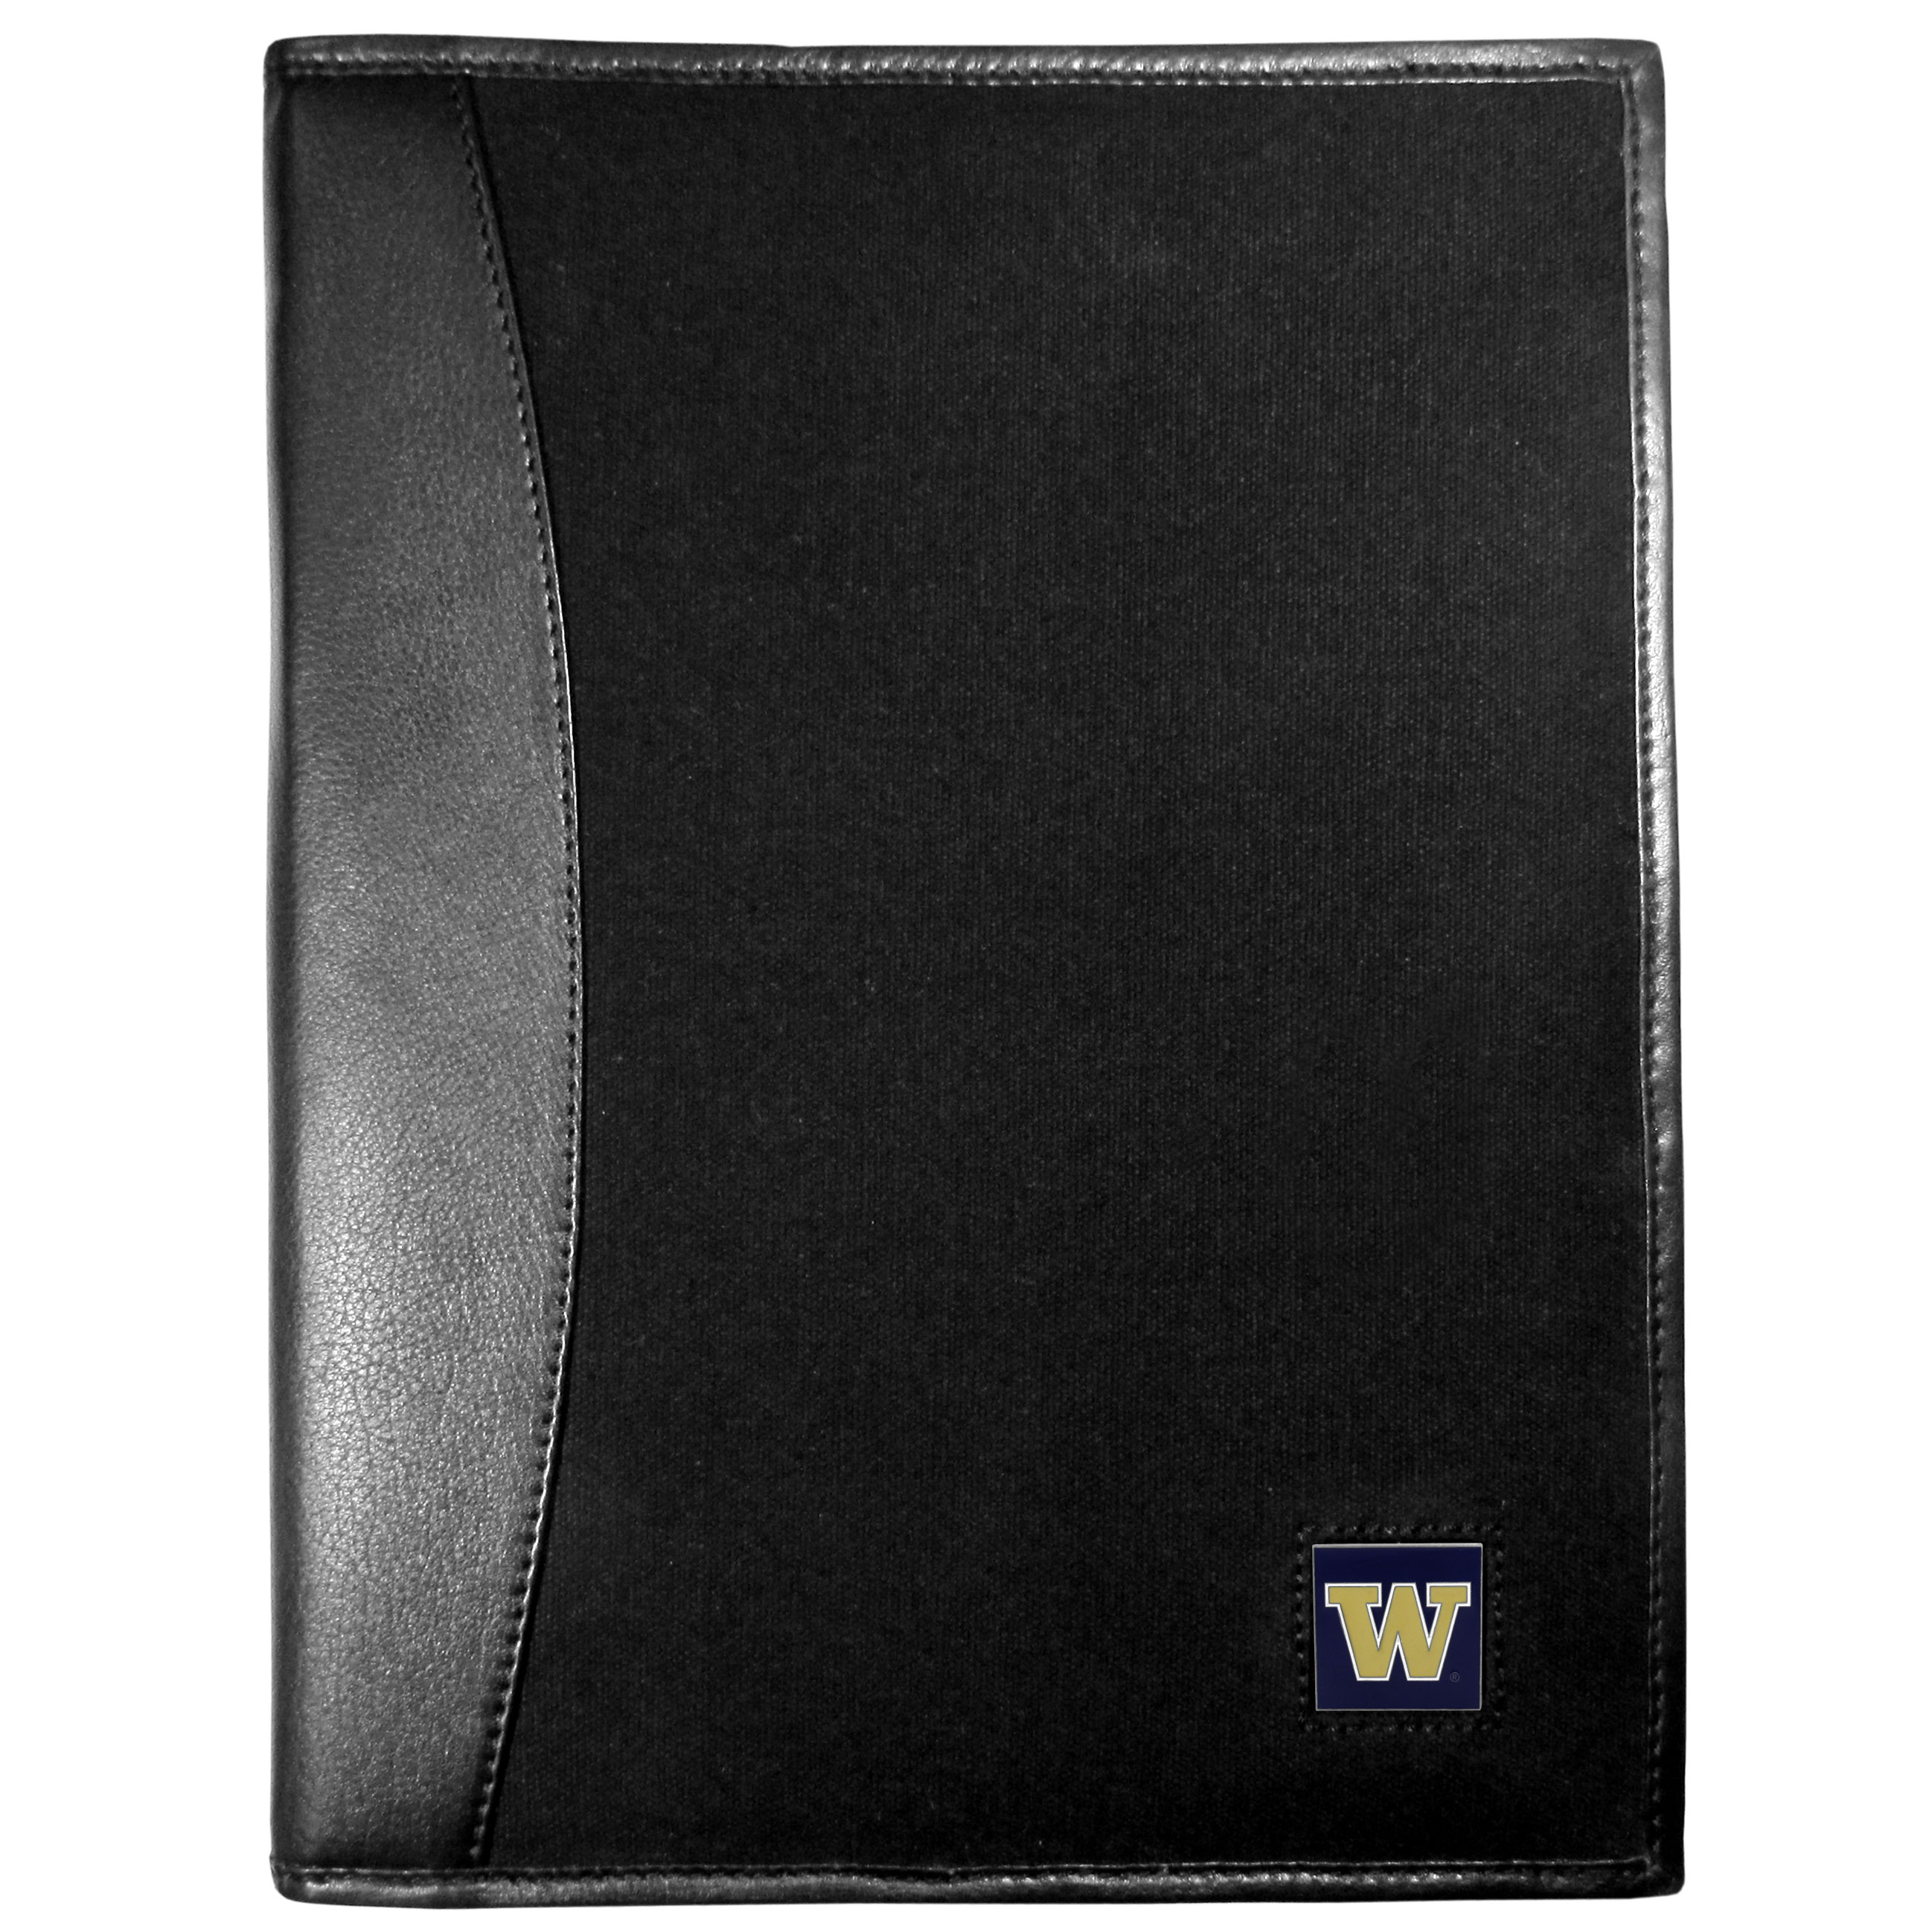 Washington Huskies Leather and Canvas Padfolio - Our leather and canvas padfolio perfectly blends form and function. The attractive portfolio is bound in fine grain leather with an attractive canvas finish and the interior is a soft nylon. This high quality business accessory also features a fully cast metal Washington Huskies emblem that is subtly set in the corner of the organizer. It is packed with features like 6 card slots for badges, business cards, hotel keys or credit cards and ID with a large pocket for loose papers and a writing tablet slot making it a must-have for the professional on the go.